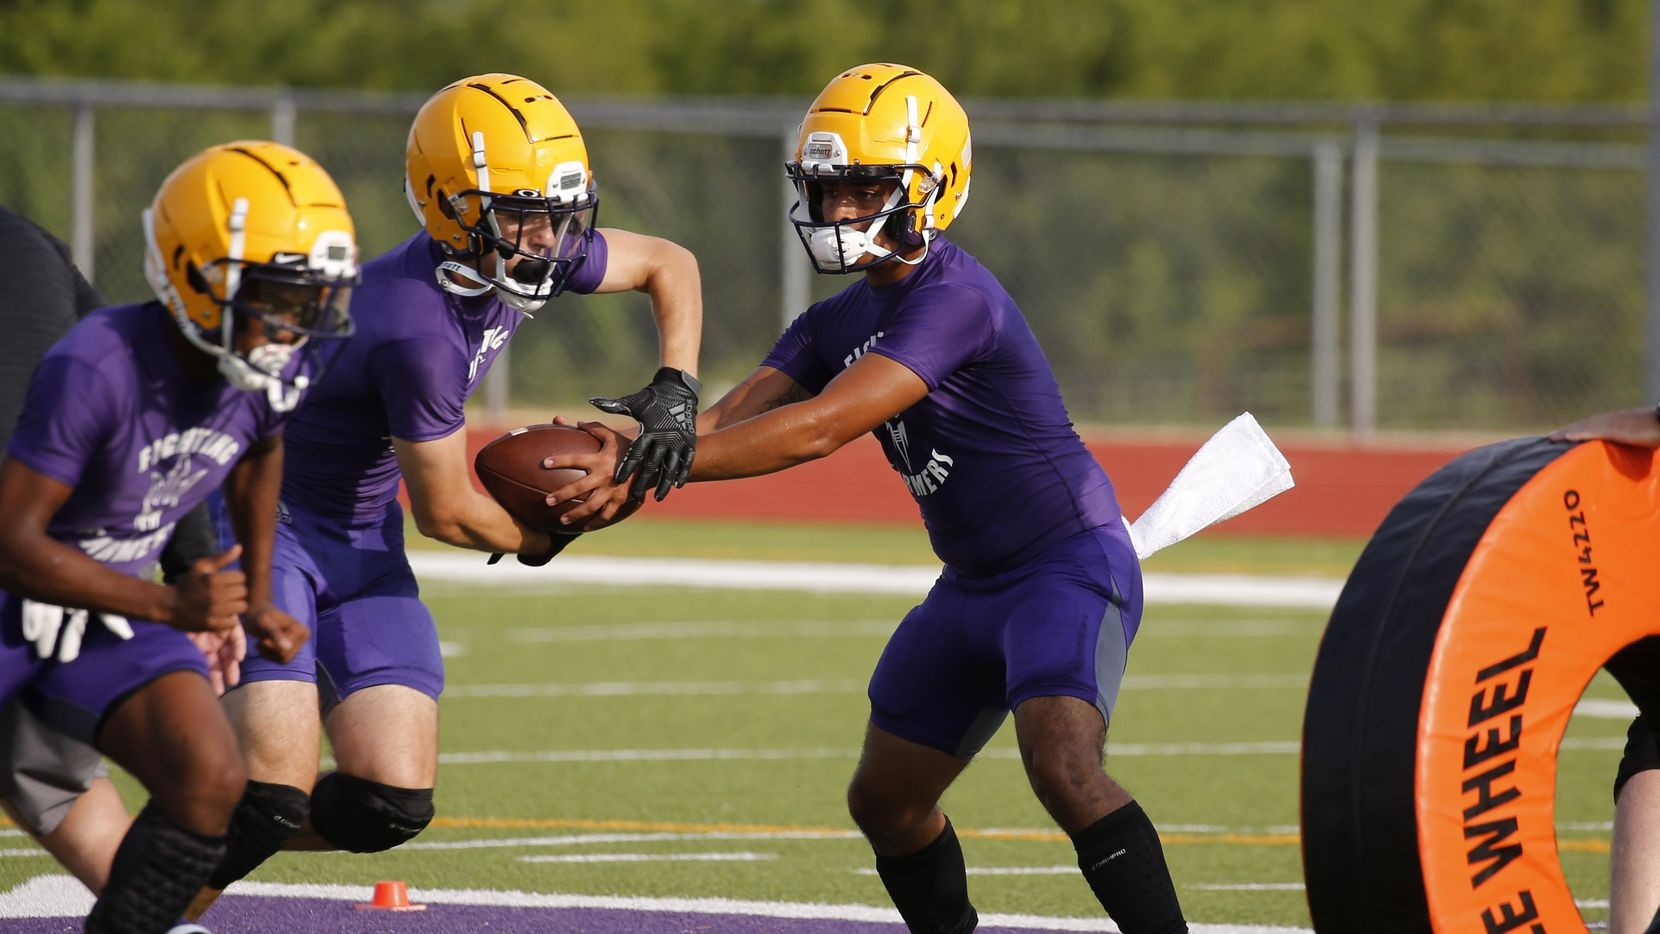 Farmersville quarterback EJ Chairez fakes a handoff to Braden Lair during the first day of high school football practice for the Class 4A schools on Monday, August 3, 2020.